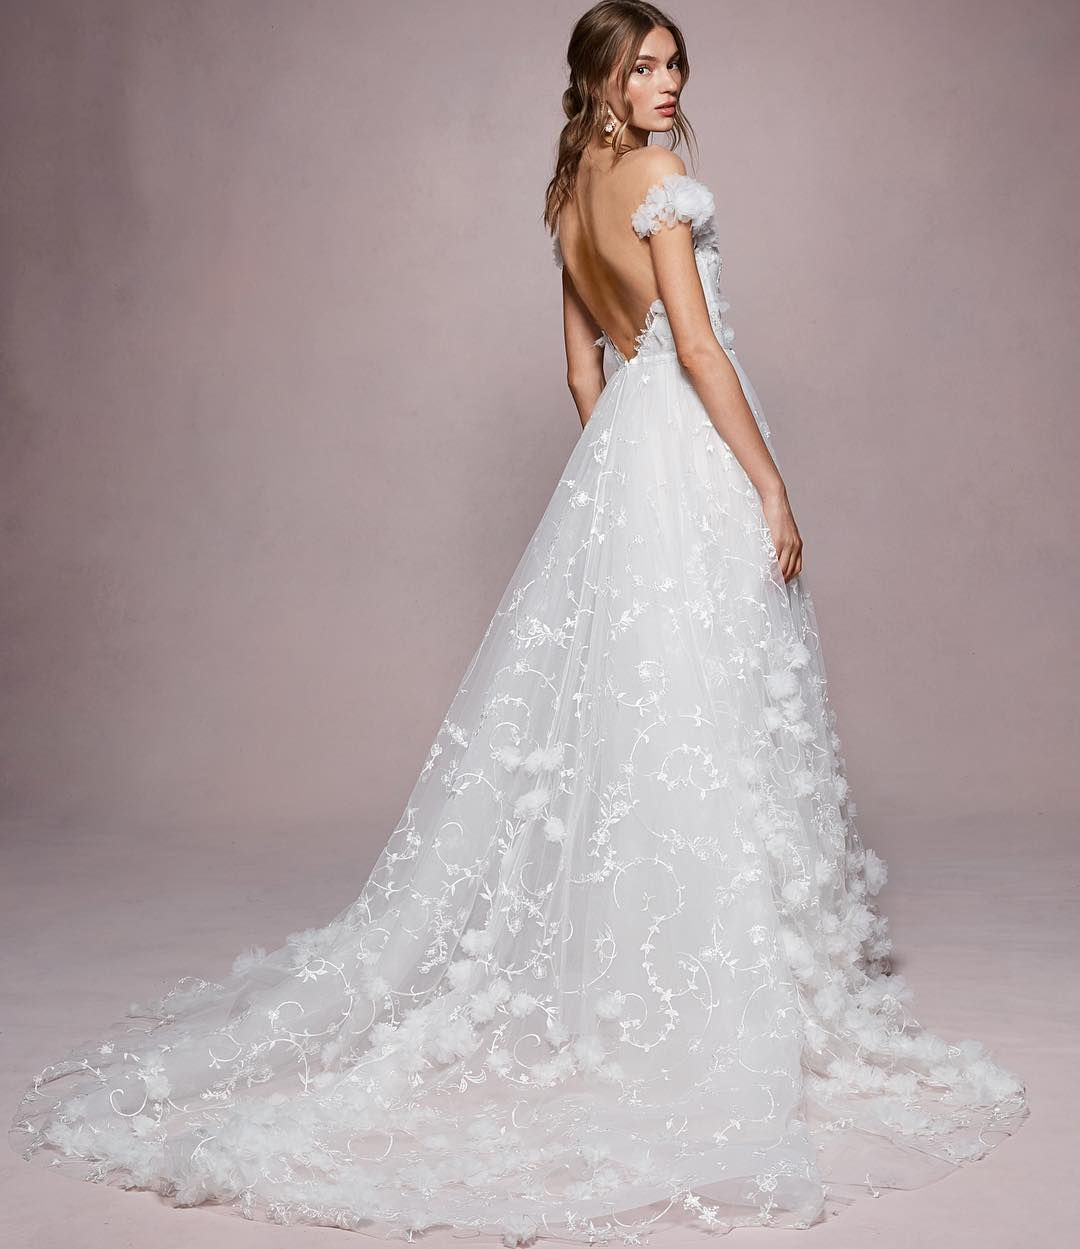 Marchesa On Instagram Back Details Of The New Kyla From The Spring Summer 2020 Marchesa Notte Bridal Marchesa Bridal Wedding Dresses Backless Wedding Dress